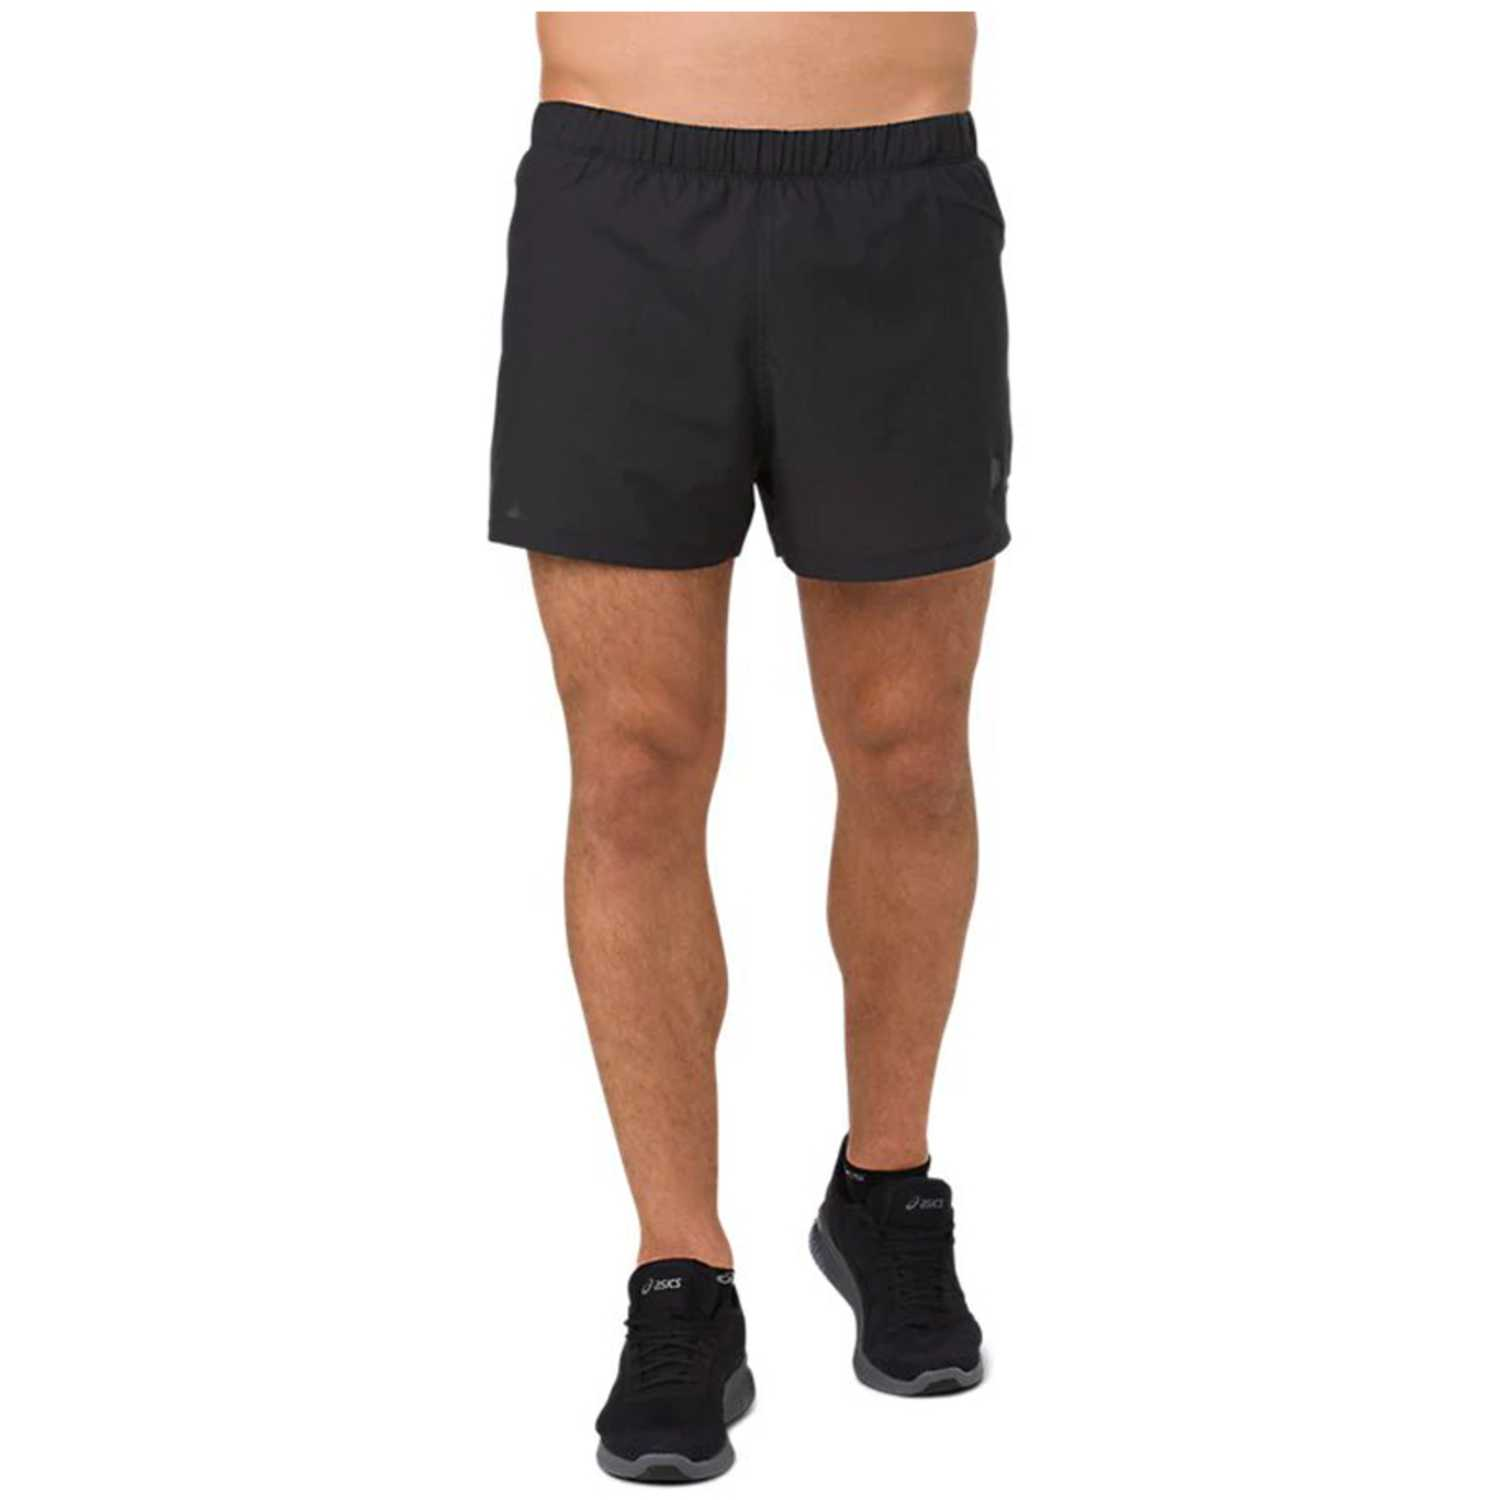 Short de Hombre Asics Negro cool 3.5 in short  performance black